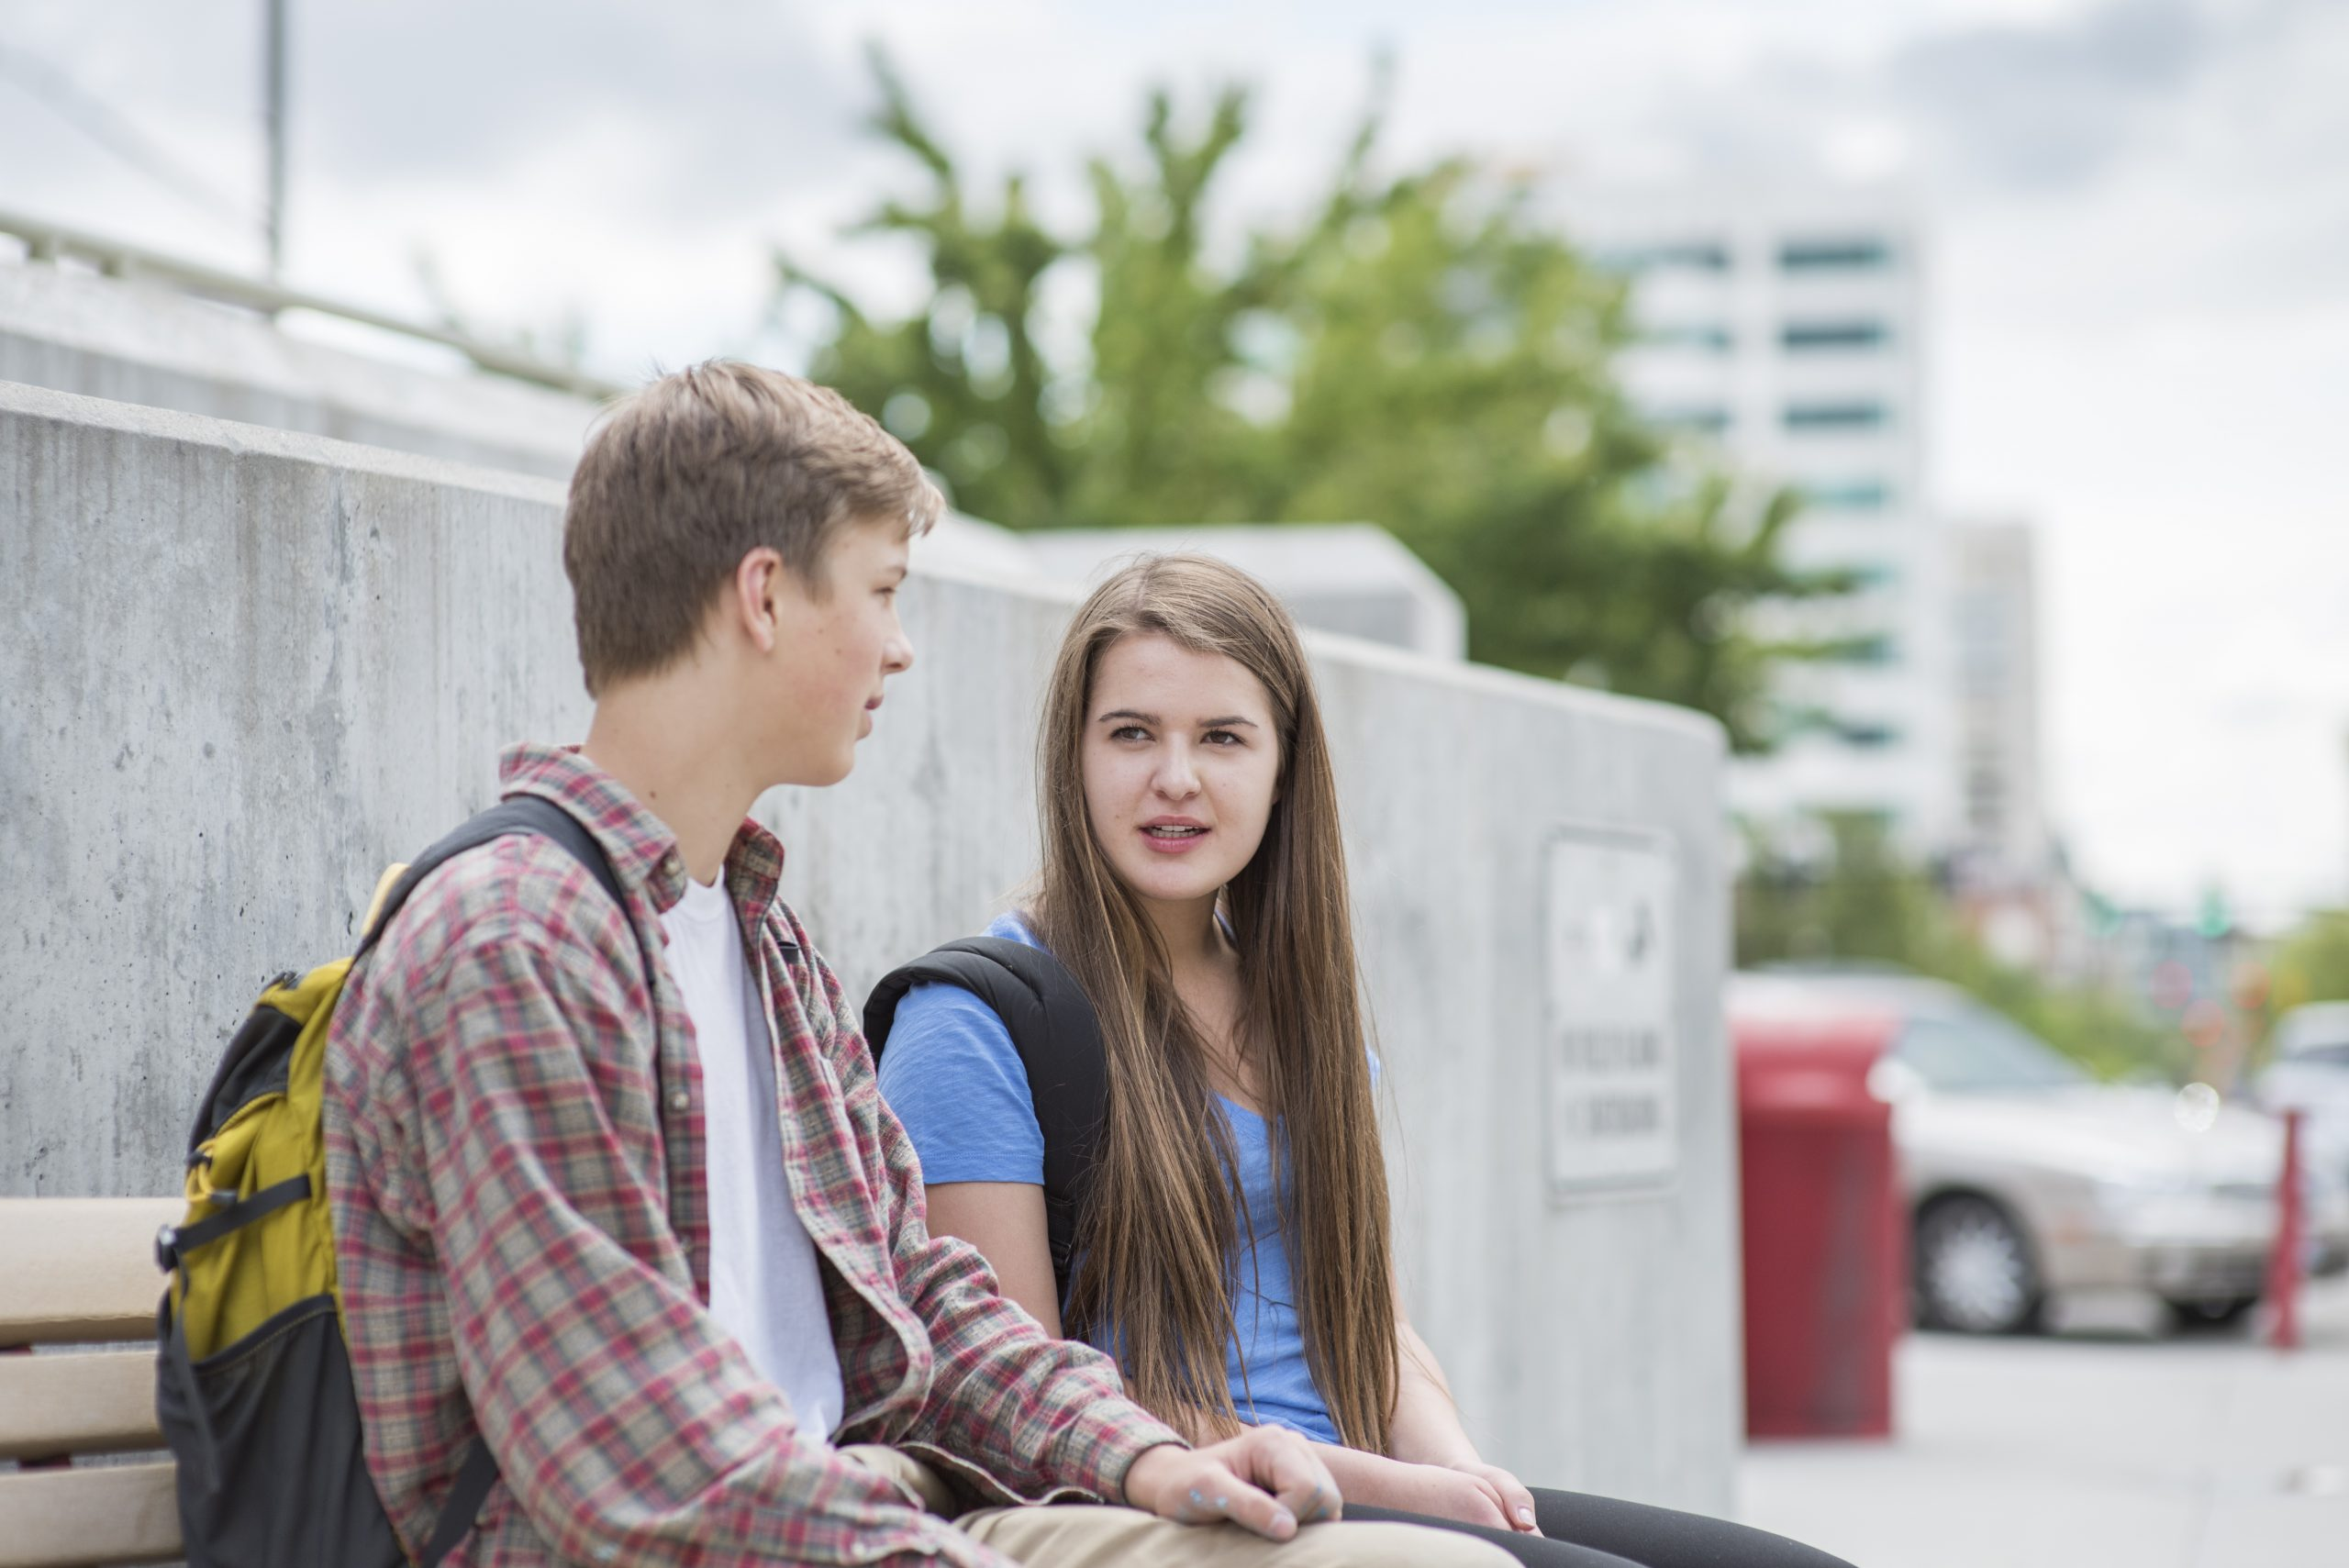 Two students sitting on a bench outside on campus talking.